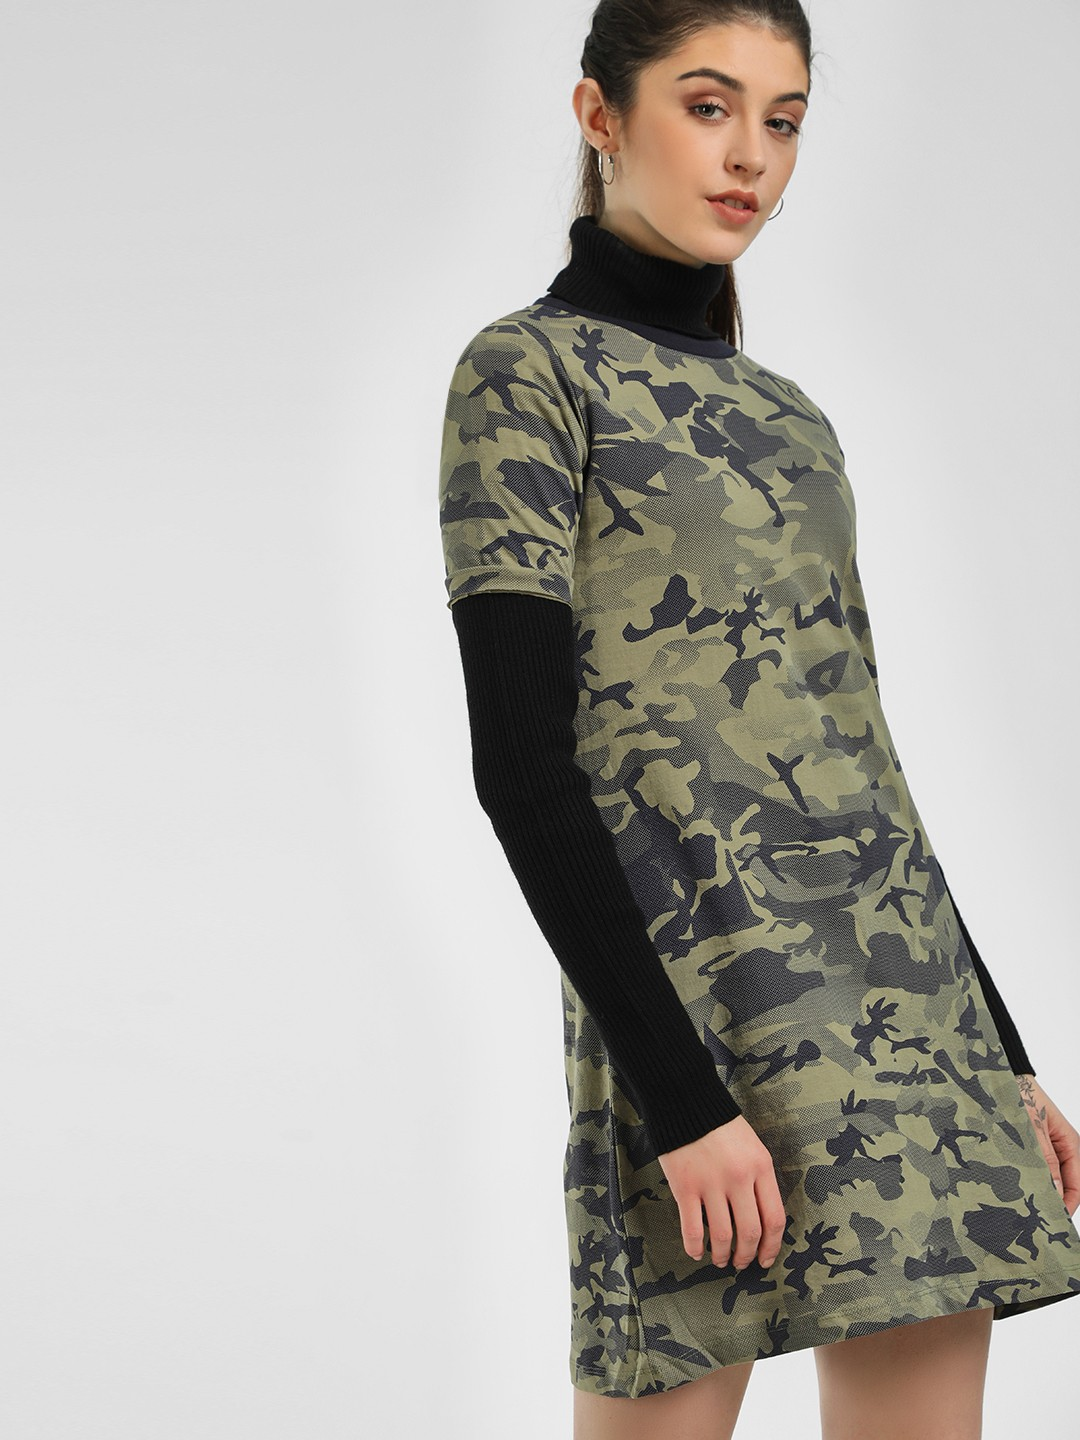 Cult Fiction Multi Camo Print Shift Dress 1